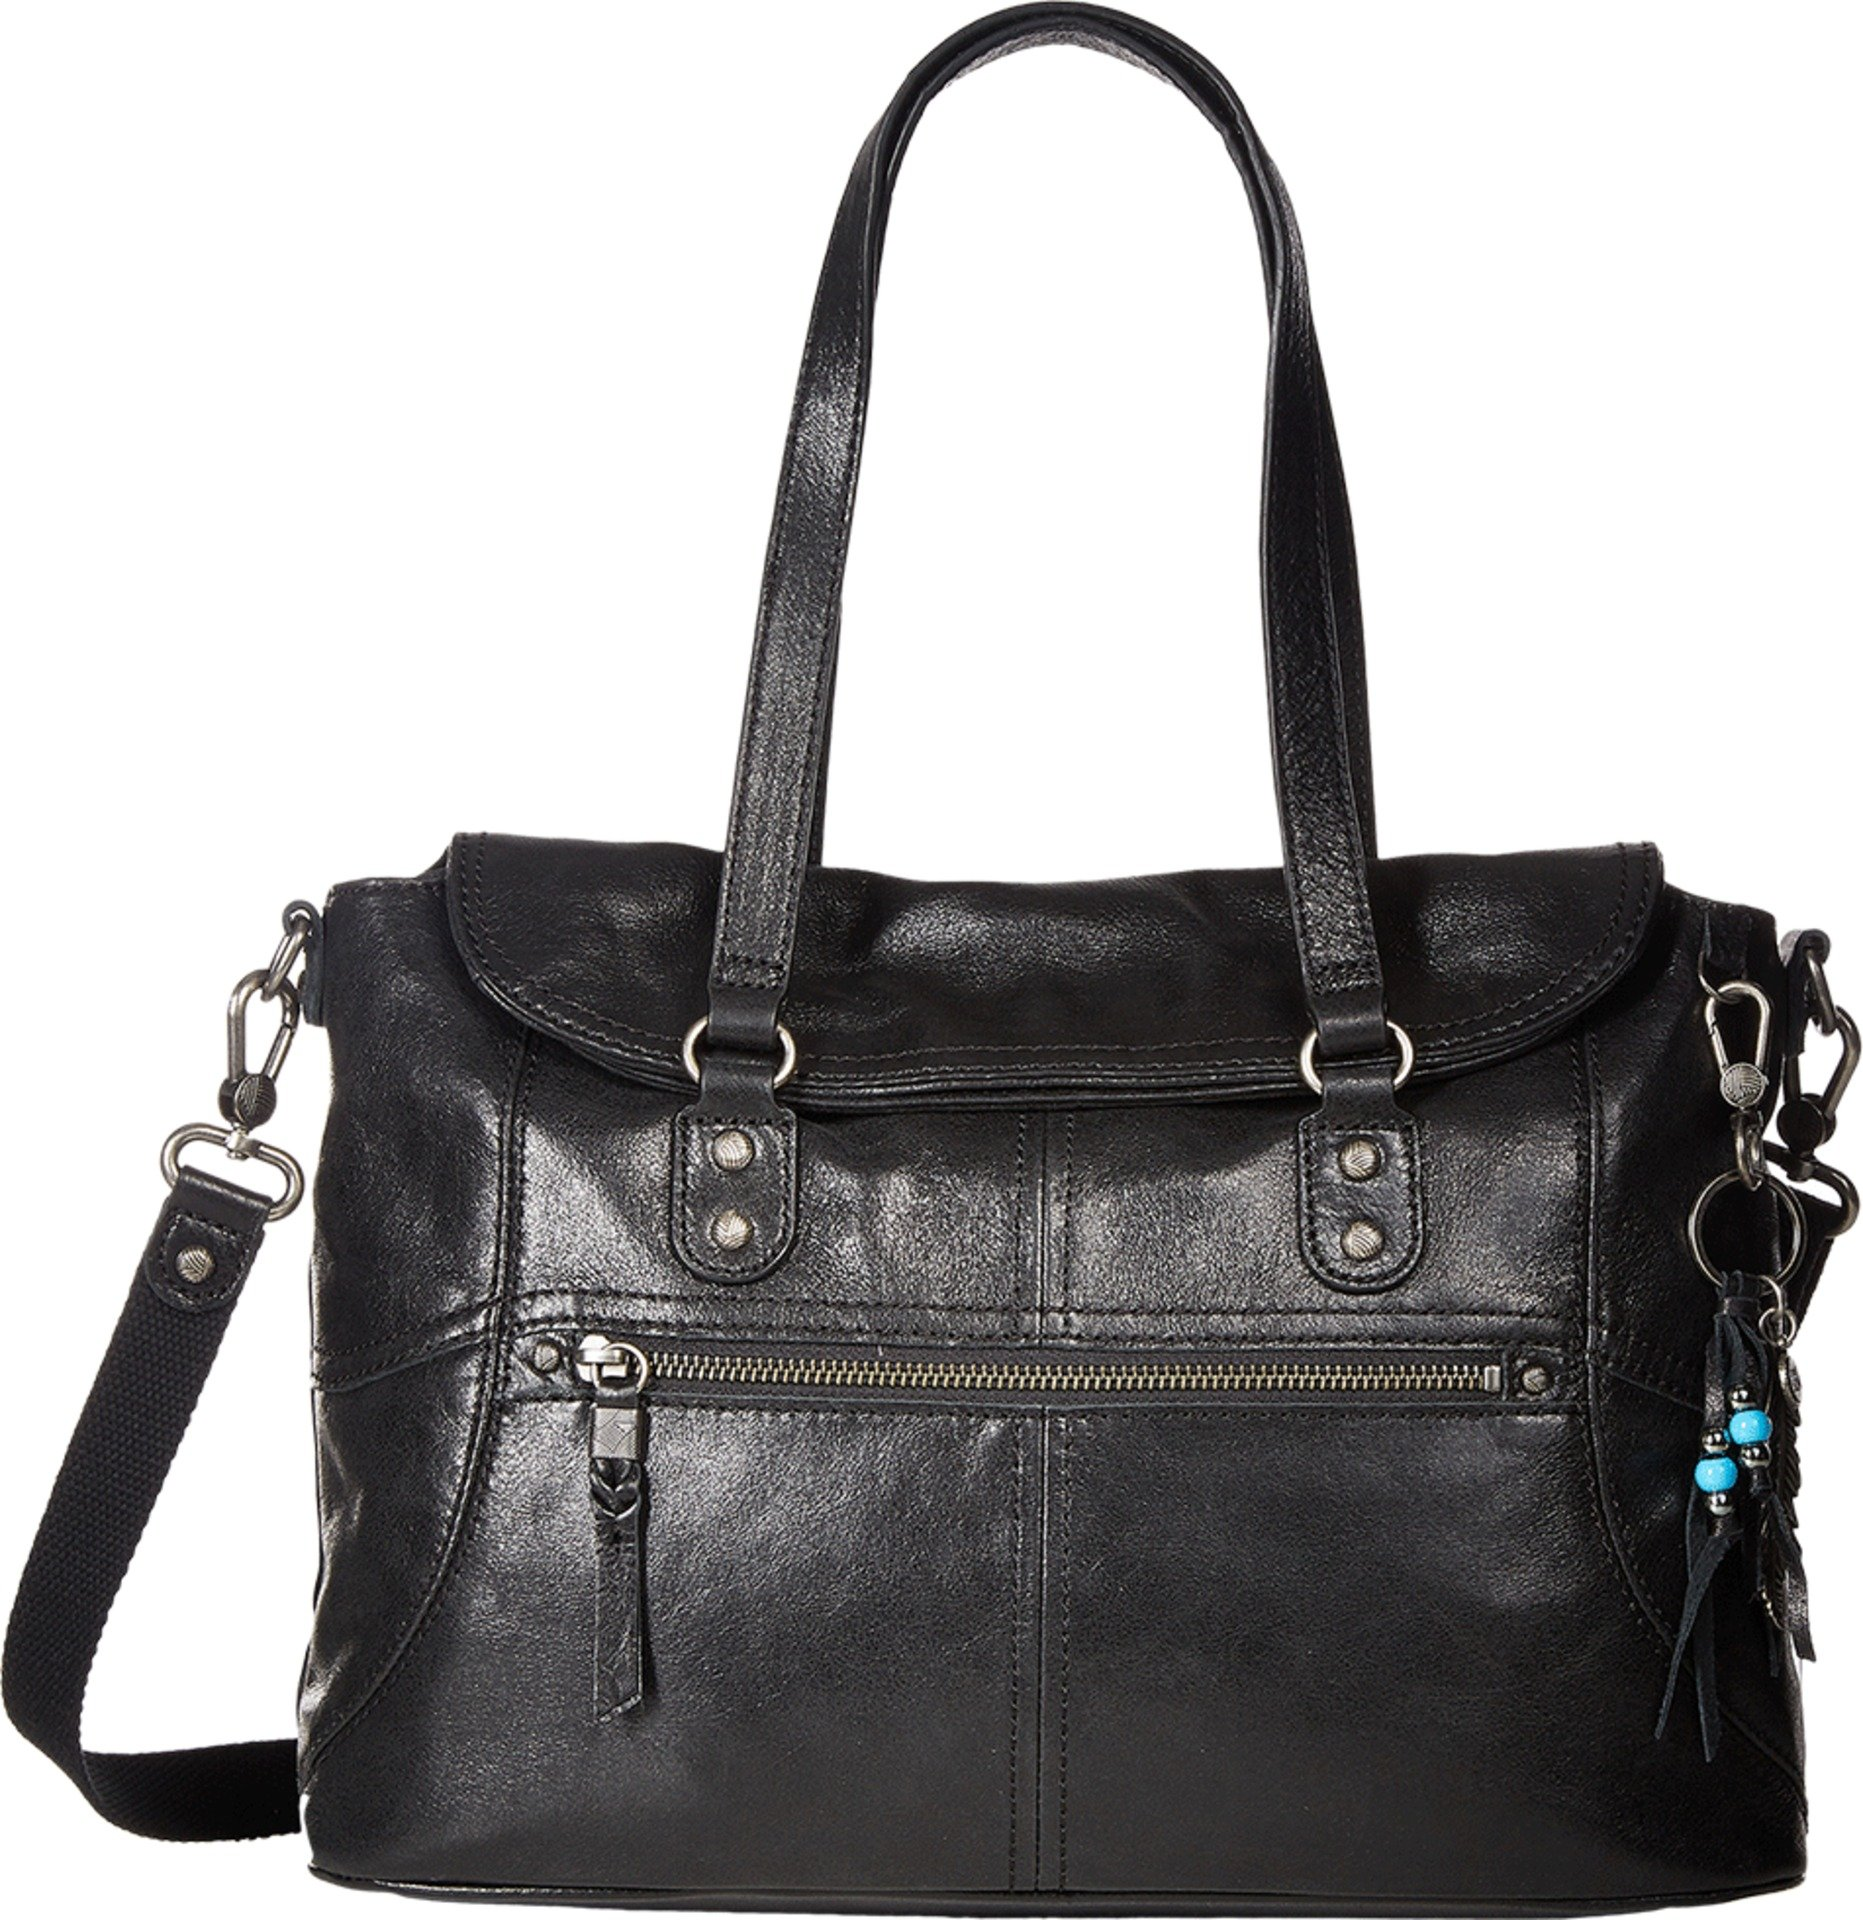 The Sak Unisex Esperato Satchel Black Handbag by The Sak